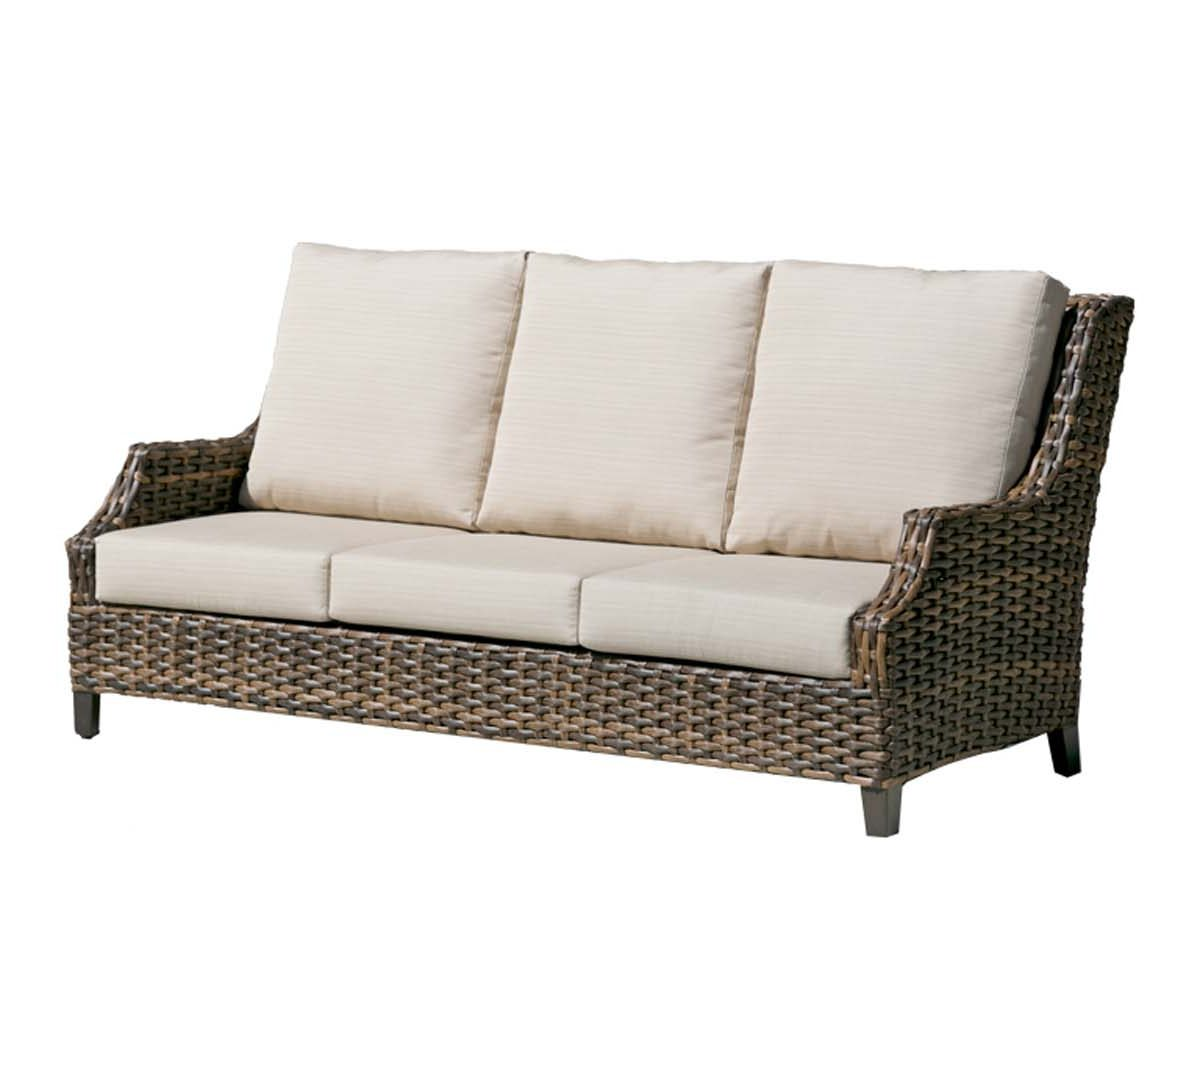 A high back Whidbey Island Sofa with tapered arms and beige colored cushions.